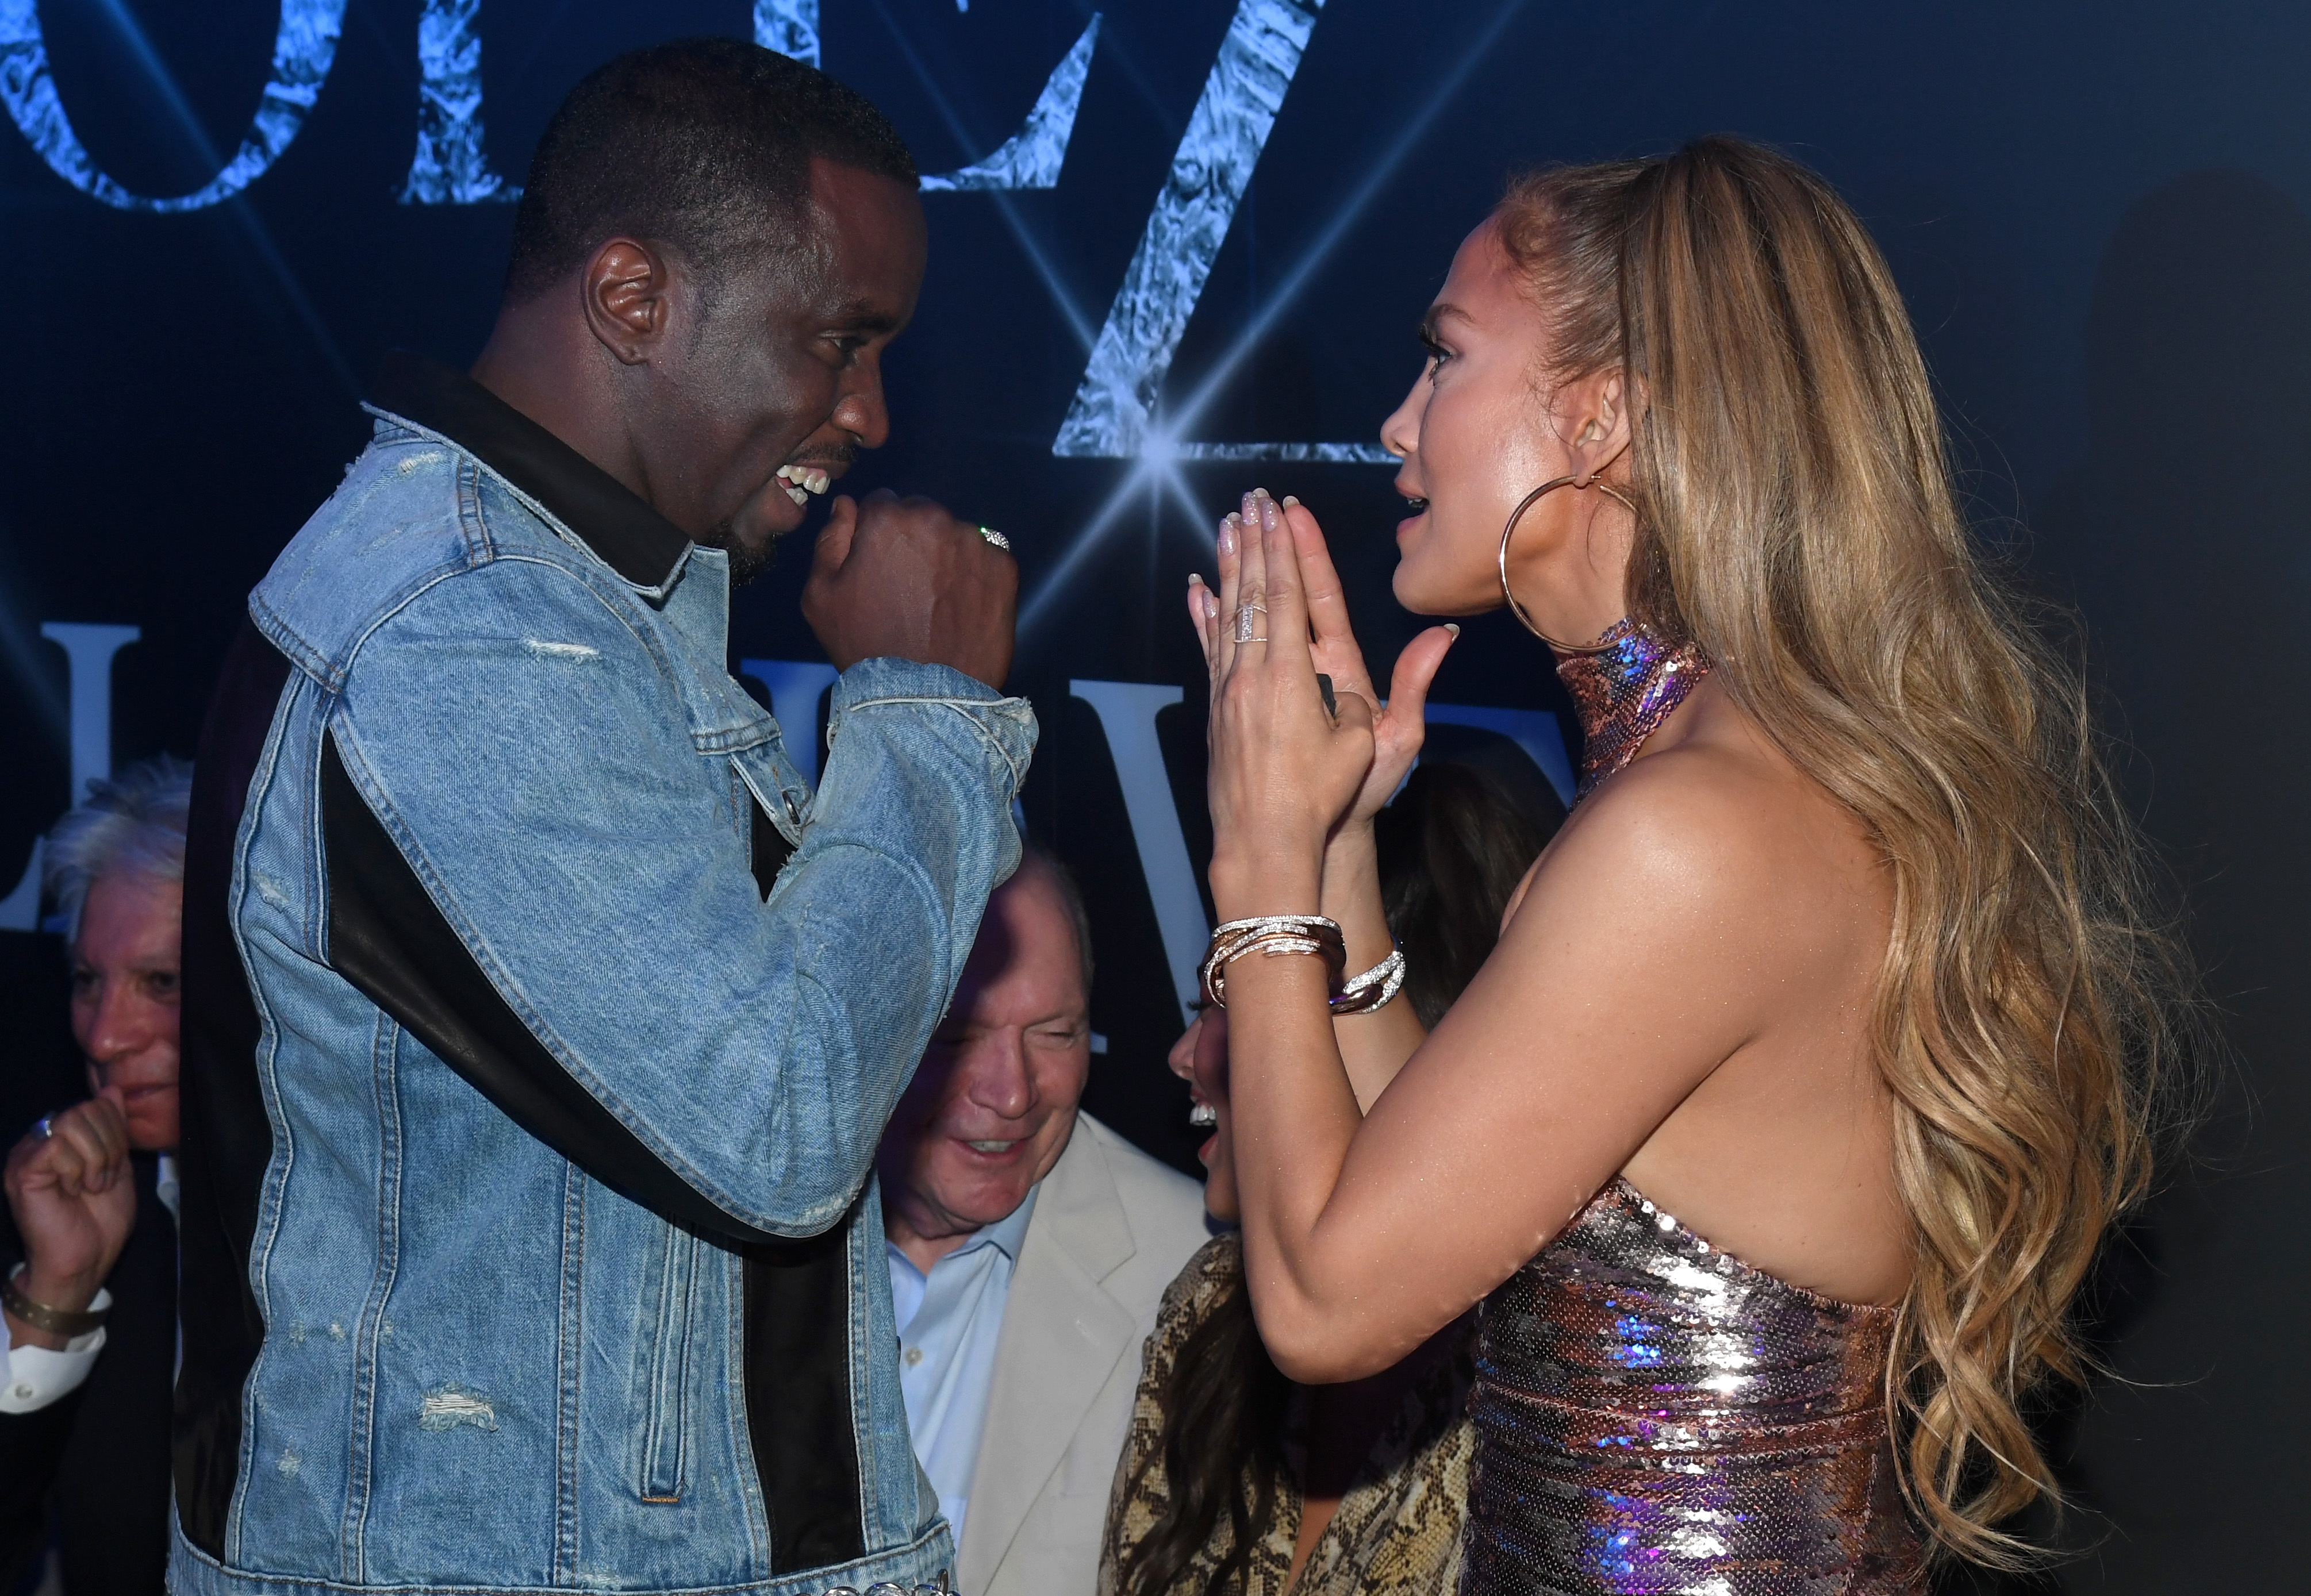 """Sean """"Diddy"""" Combs and Jennifer Lopez share a moment at the afterparty at Mr. Chow at Caesars Palace celebrating the finale of her """"Jennifer Lopez: All I Have"""" residency at the Zappos Theater at Planet Hollywood in Las Vegas on Sept. 29, 2018."""